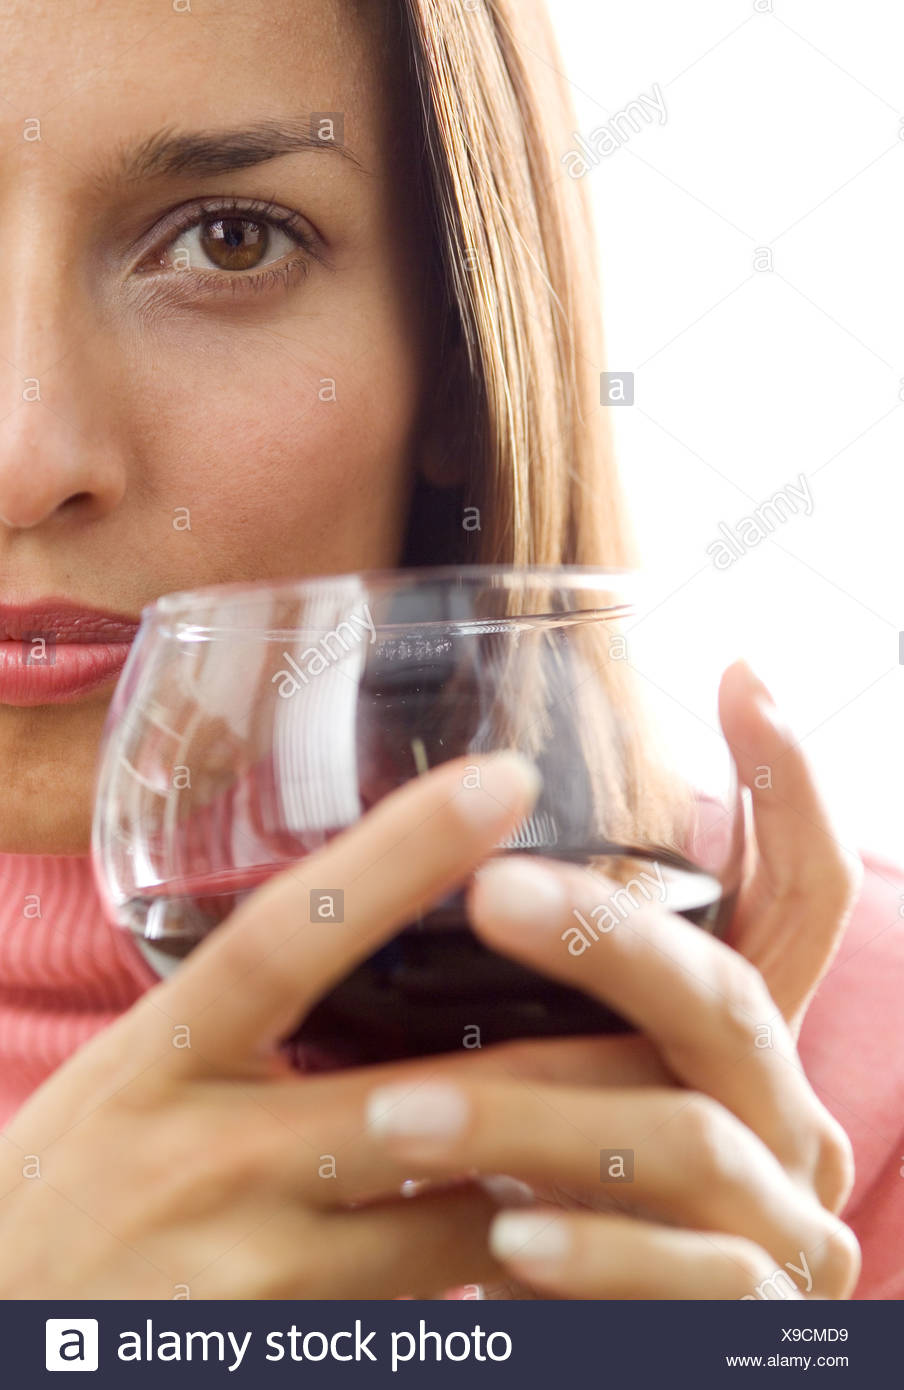 Woman holding a glass of red wine - Stock Image